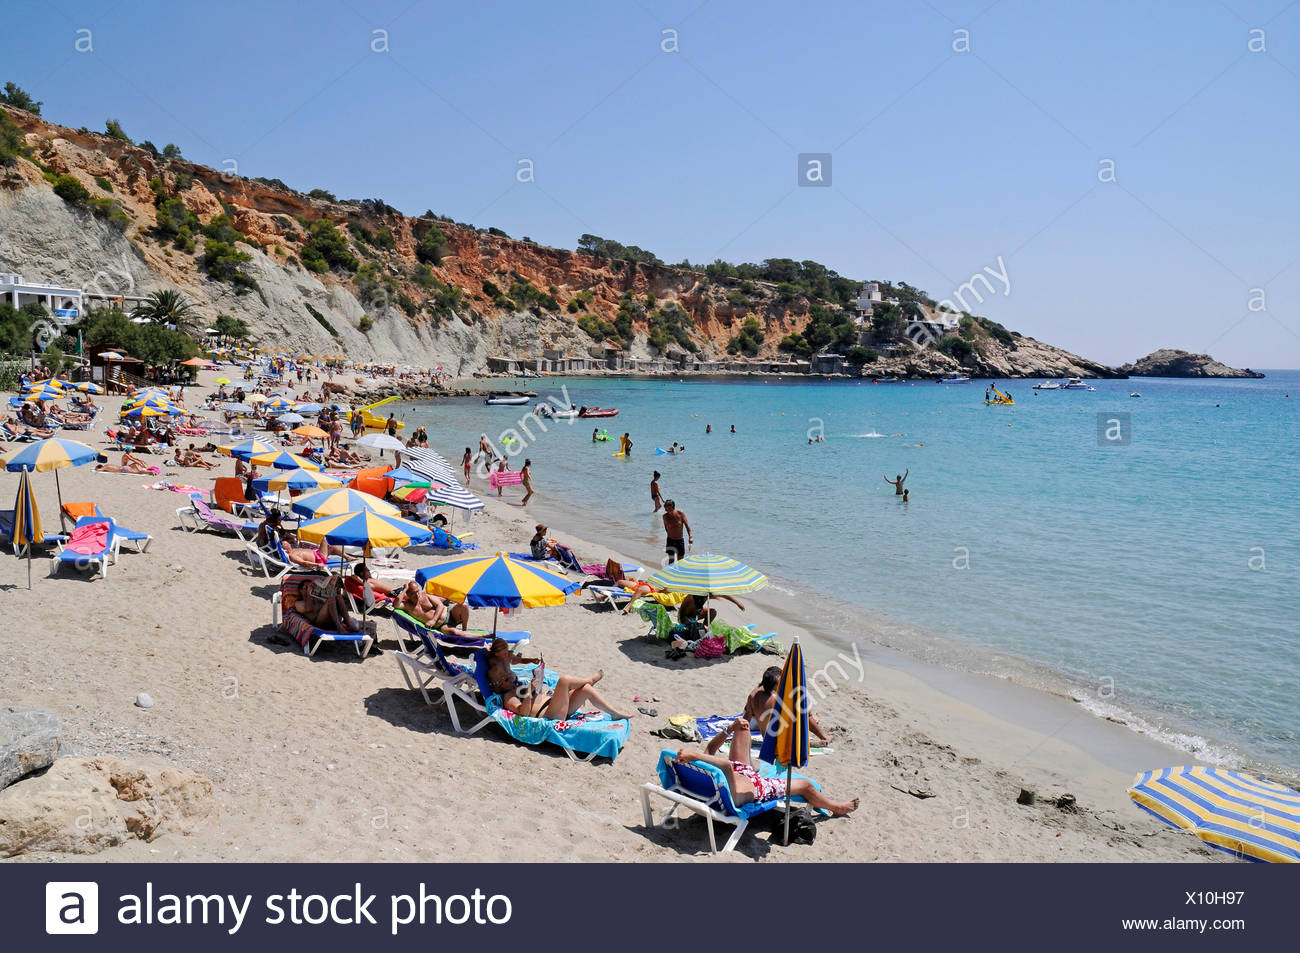 Holidaymakers on Cala d'Hort beach, Ibiza, Pityuses, Balearic Islands, Spain, Europe - Stock Image